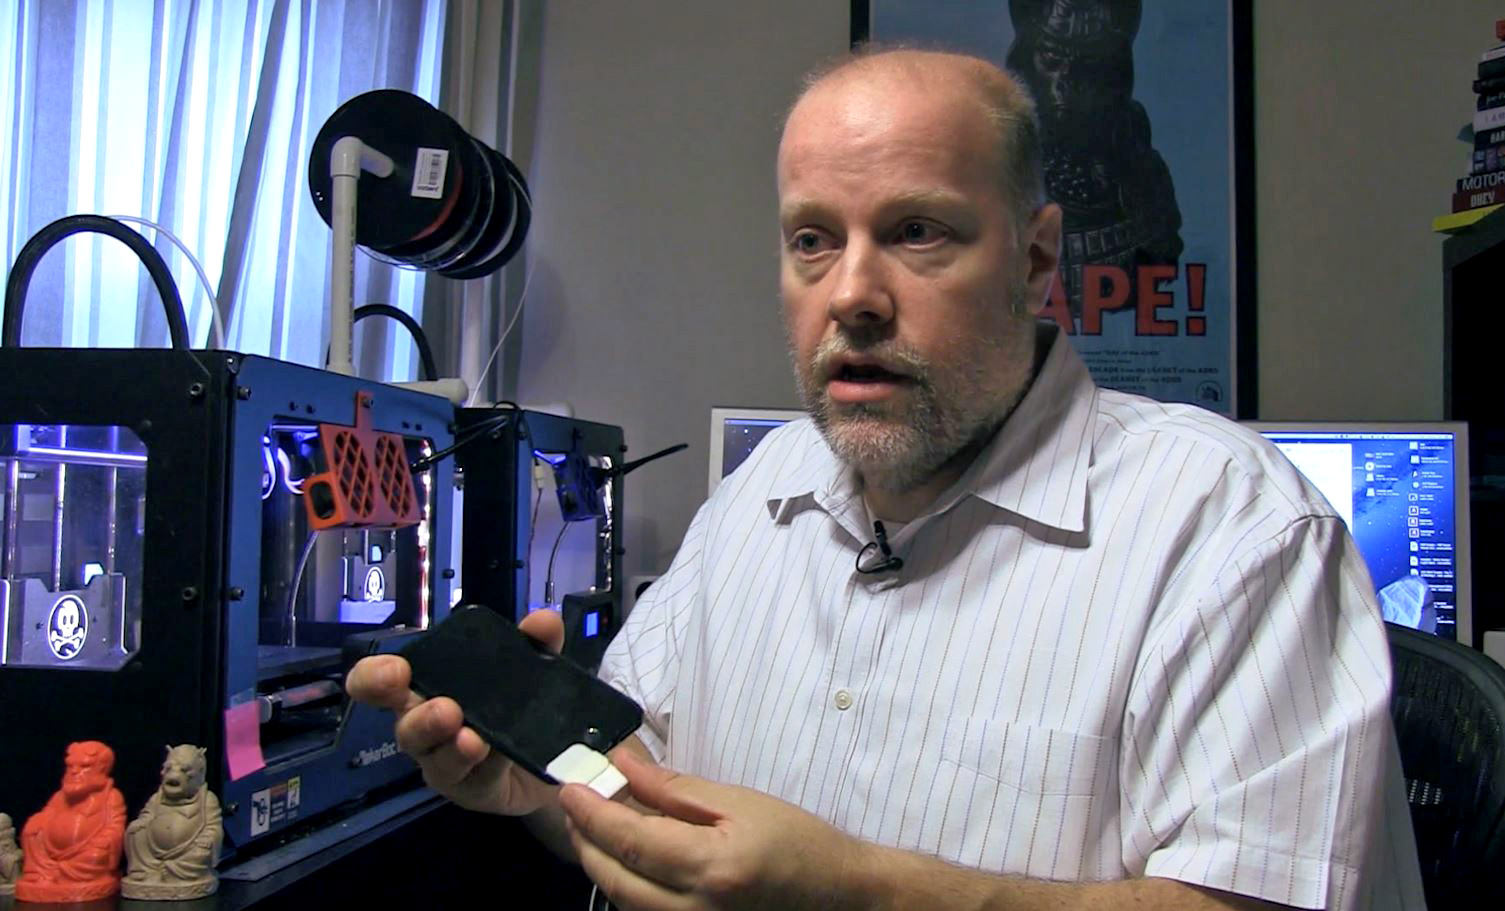 Inventor Chris Milnes shows IBTimes UK the Squarehelper, a 3D-printed invention